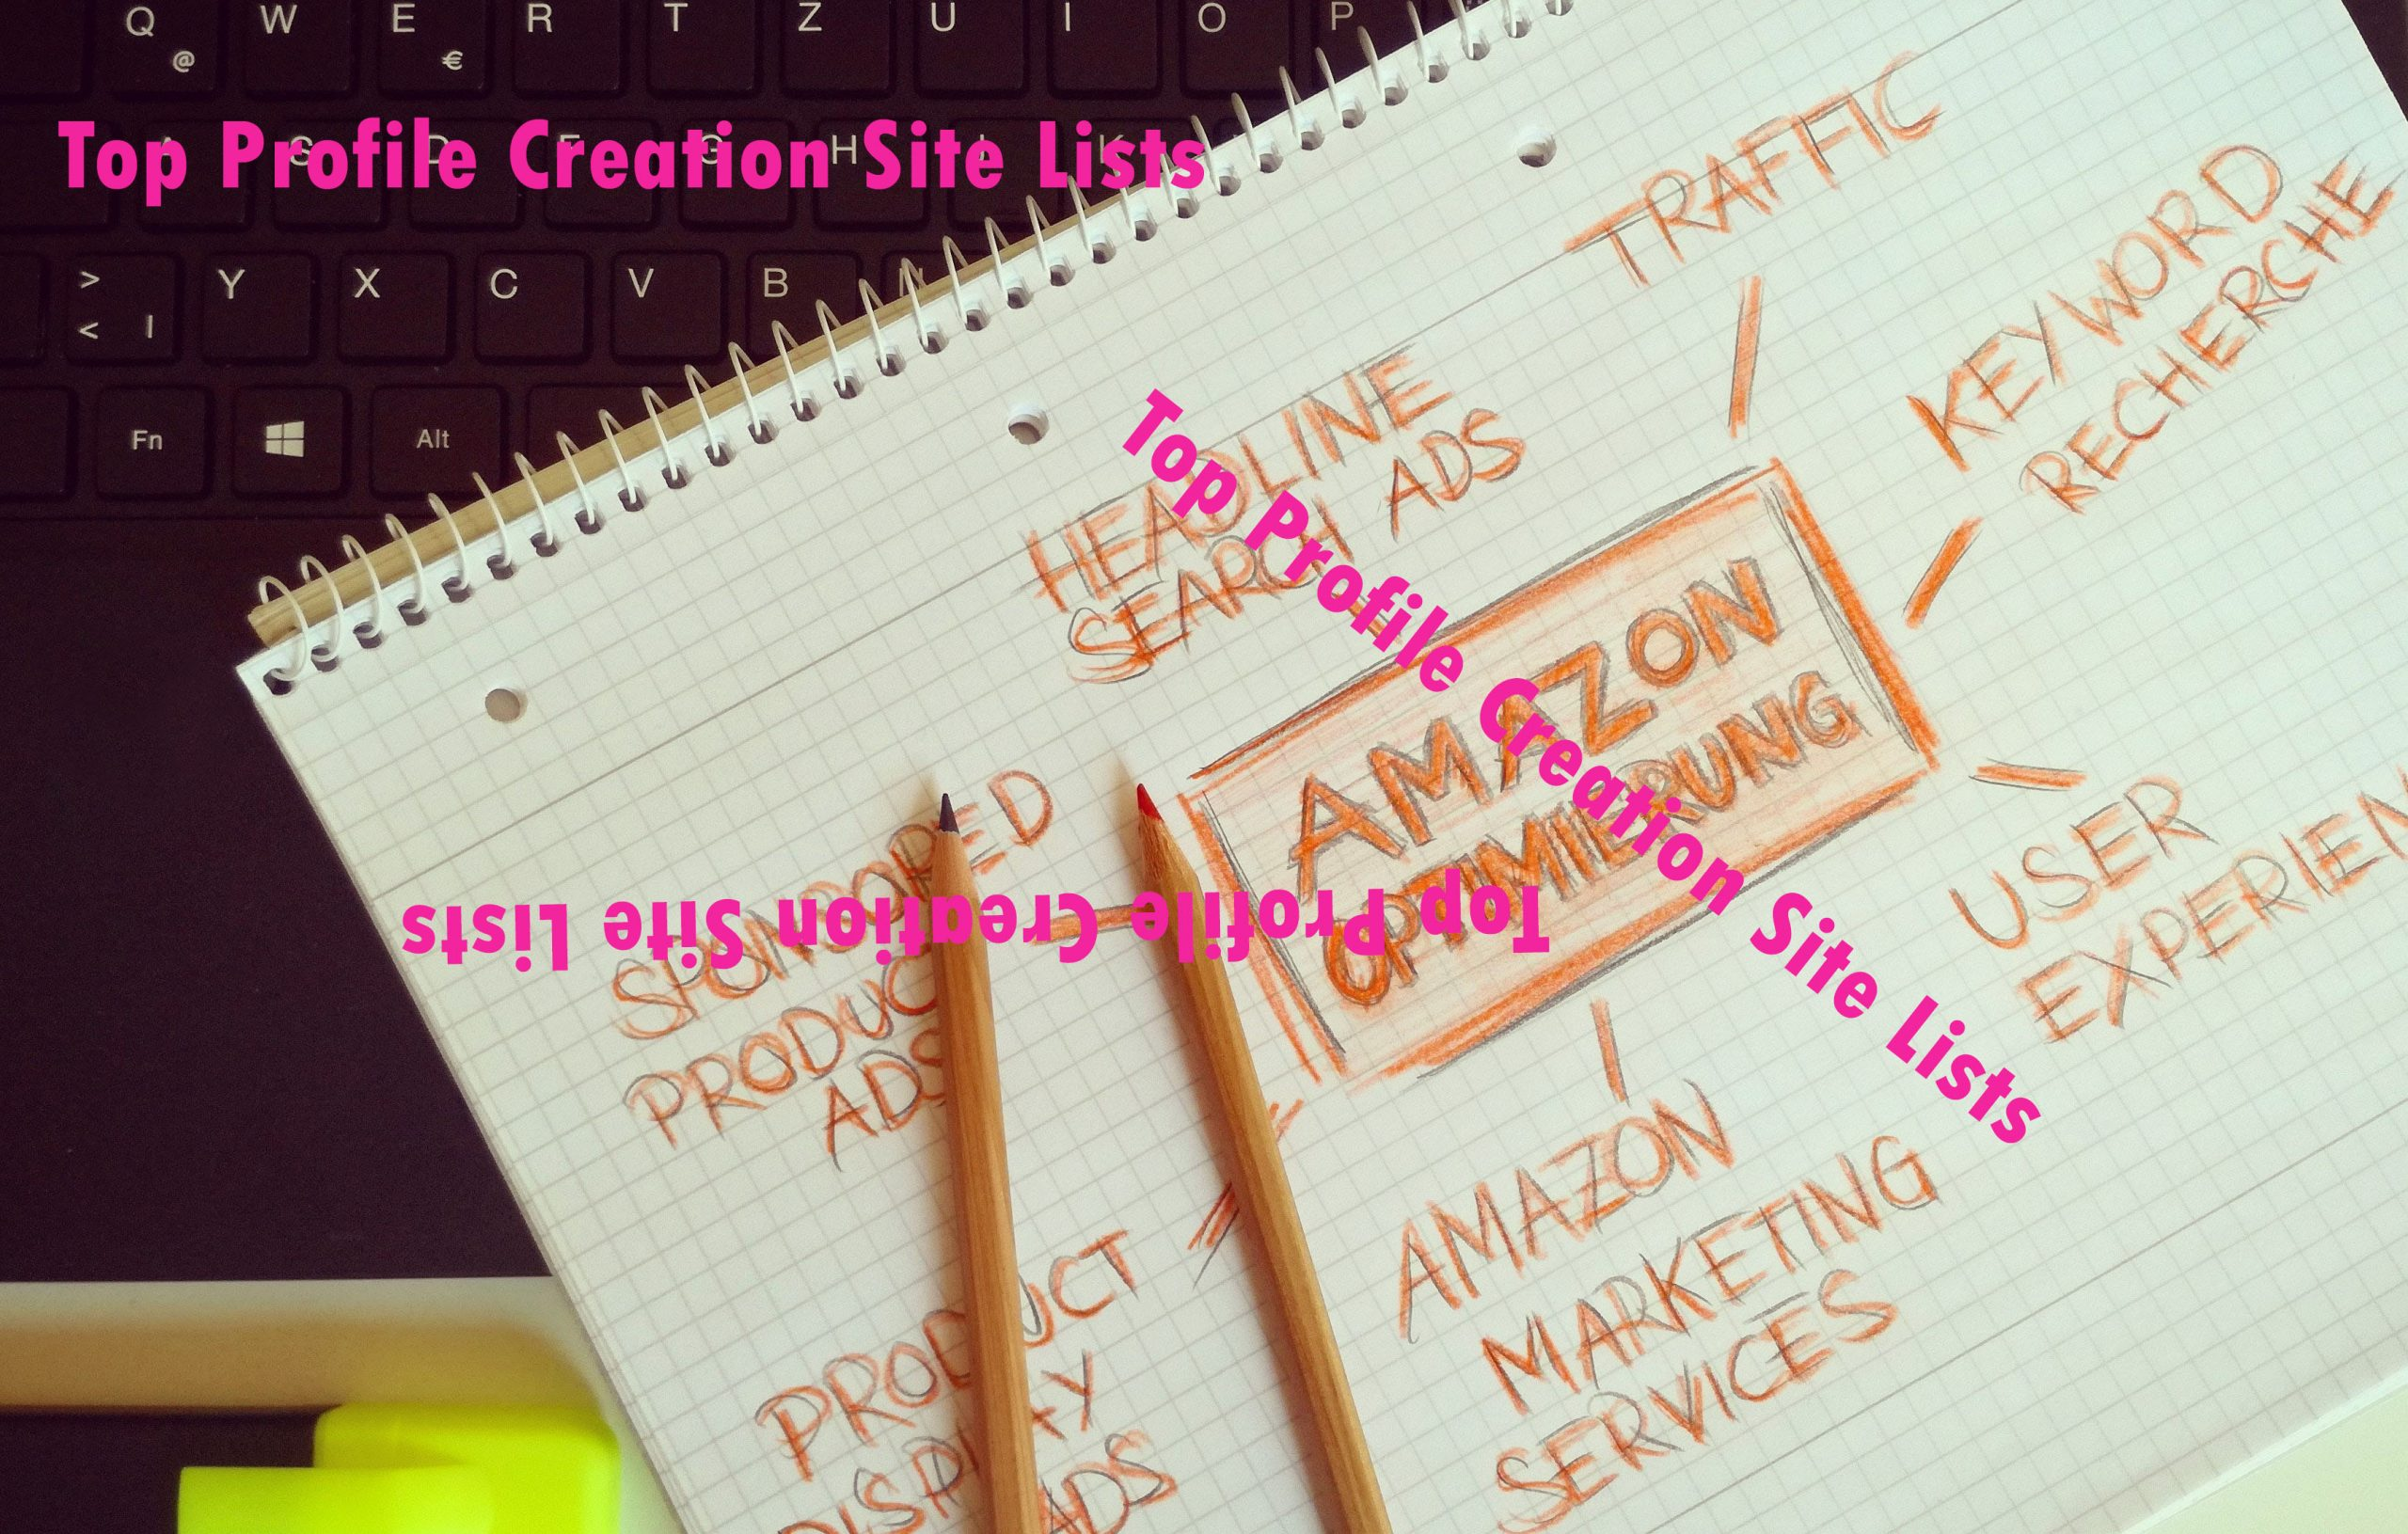 Do-follow Profile Creation Sites List 2021